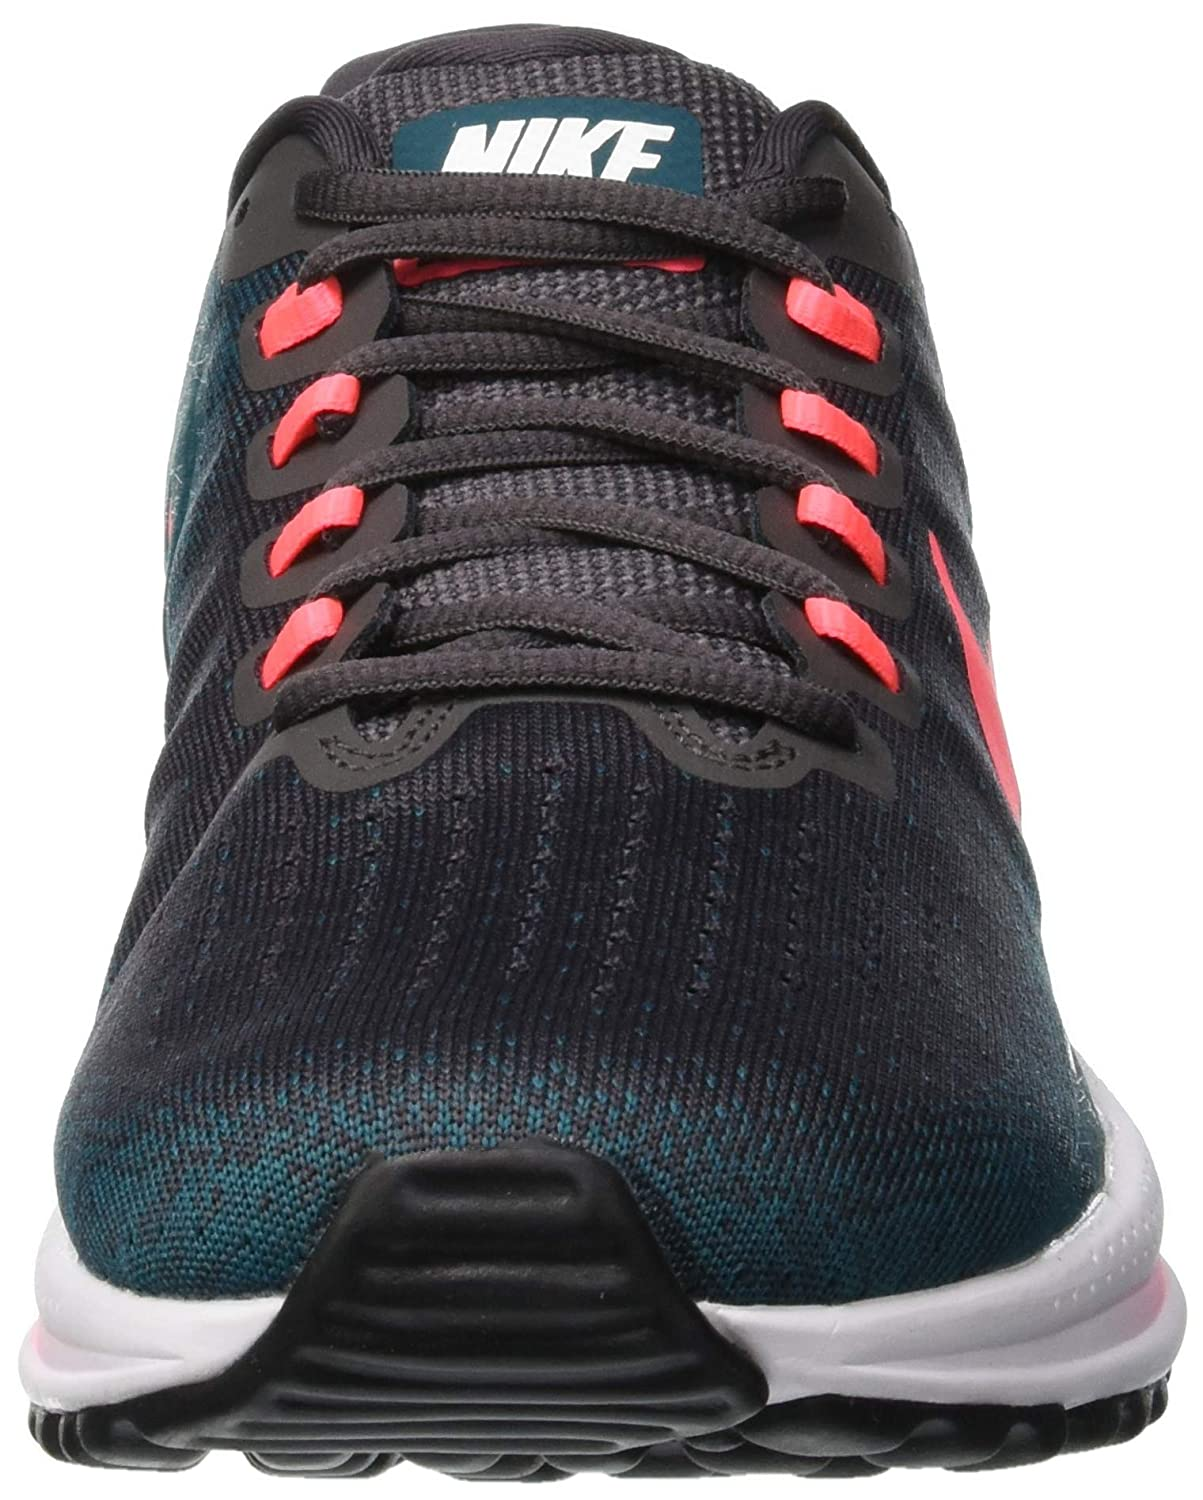 info for 710db a8ffe Nike Men s Air Zoom Vomero 13 Running Shoes  Amazon.co.uk  Shoes   Bags